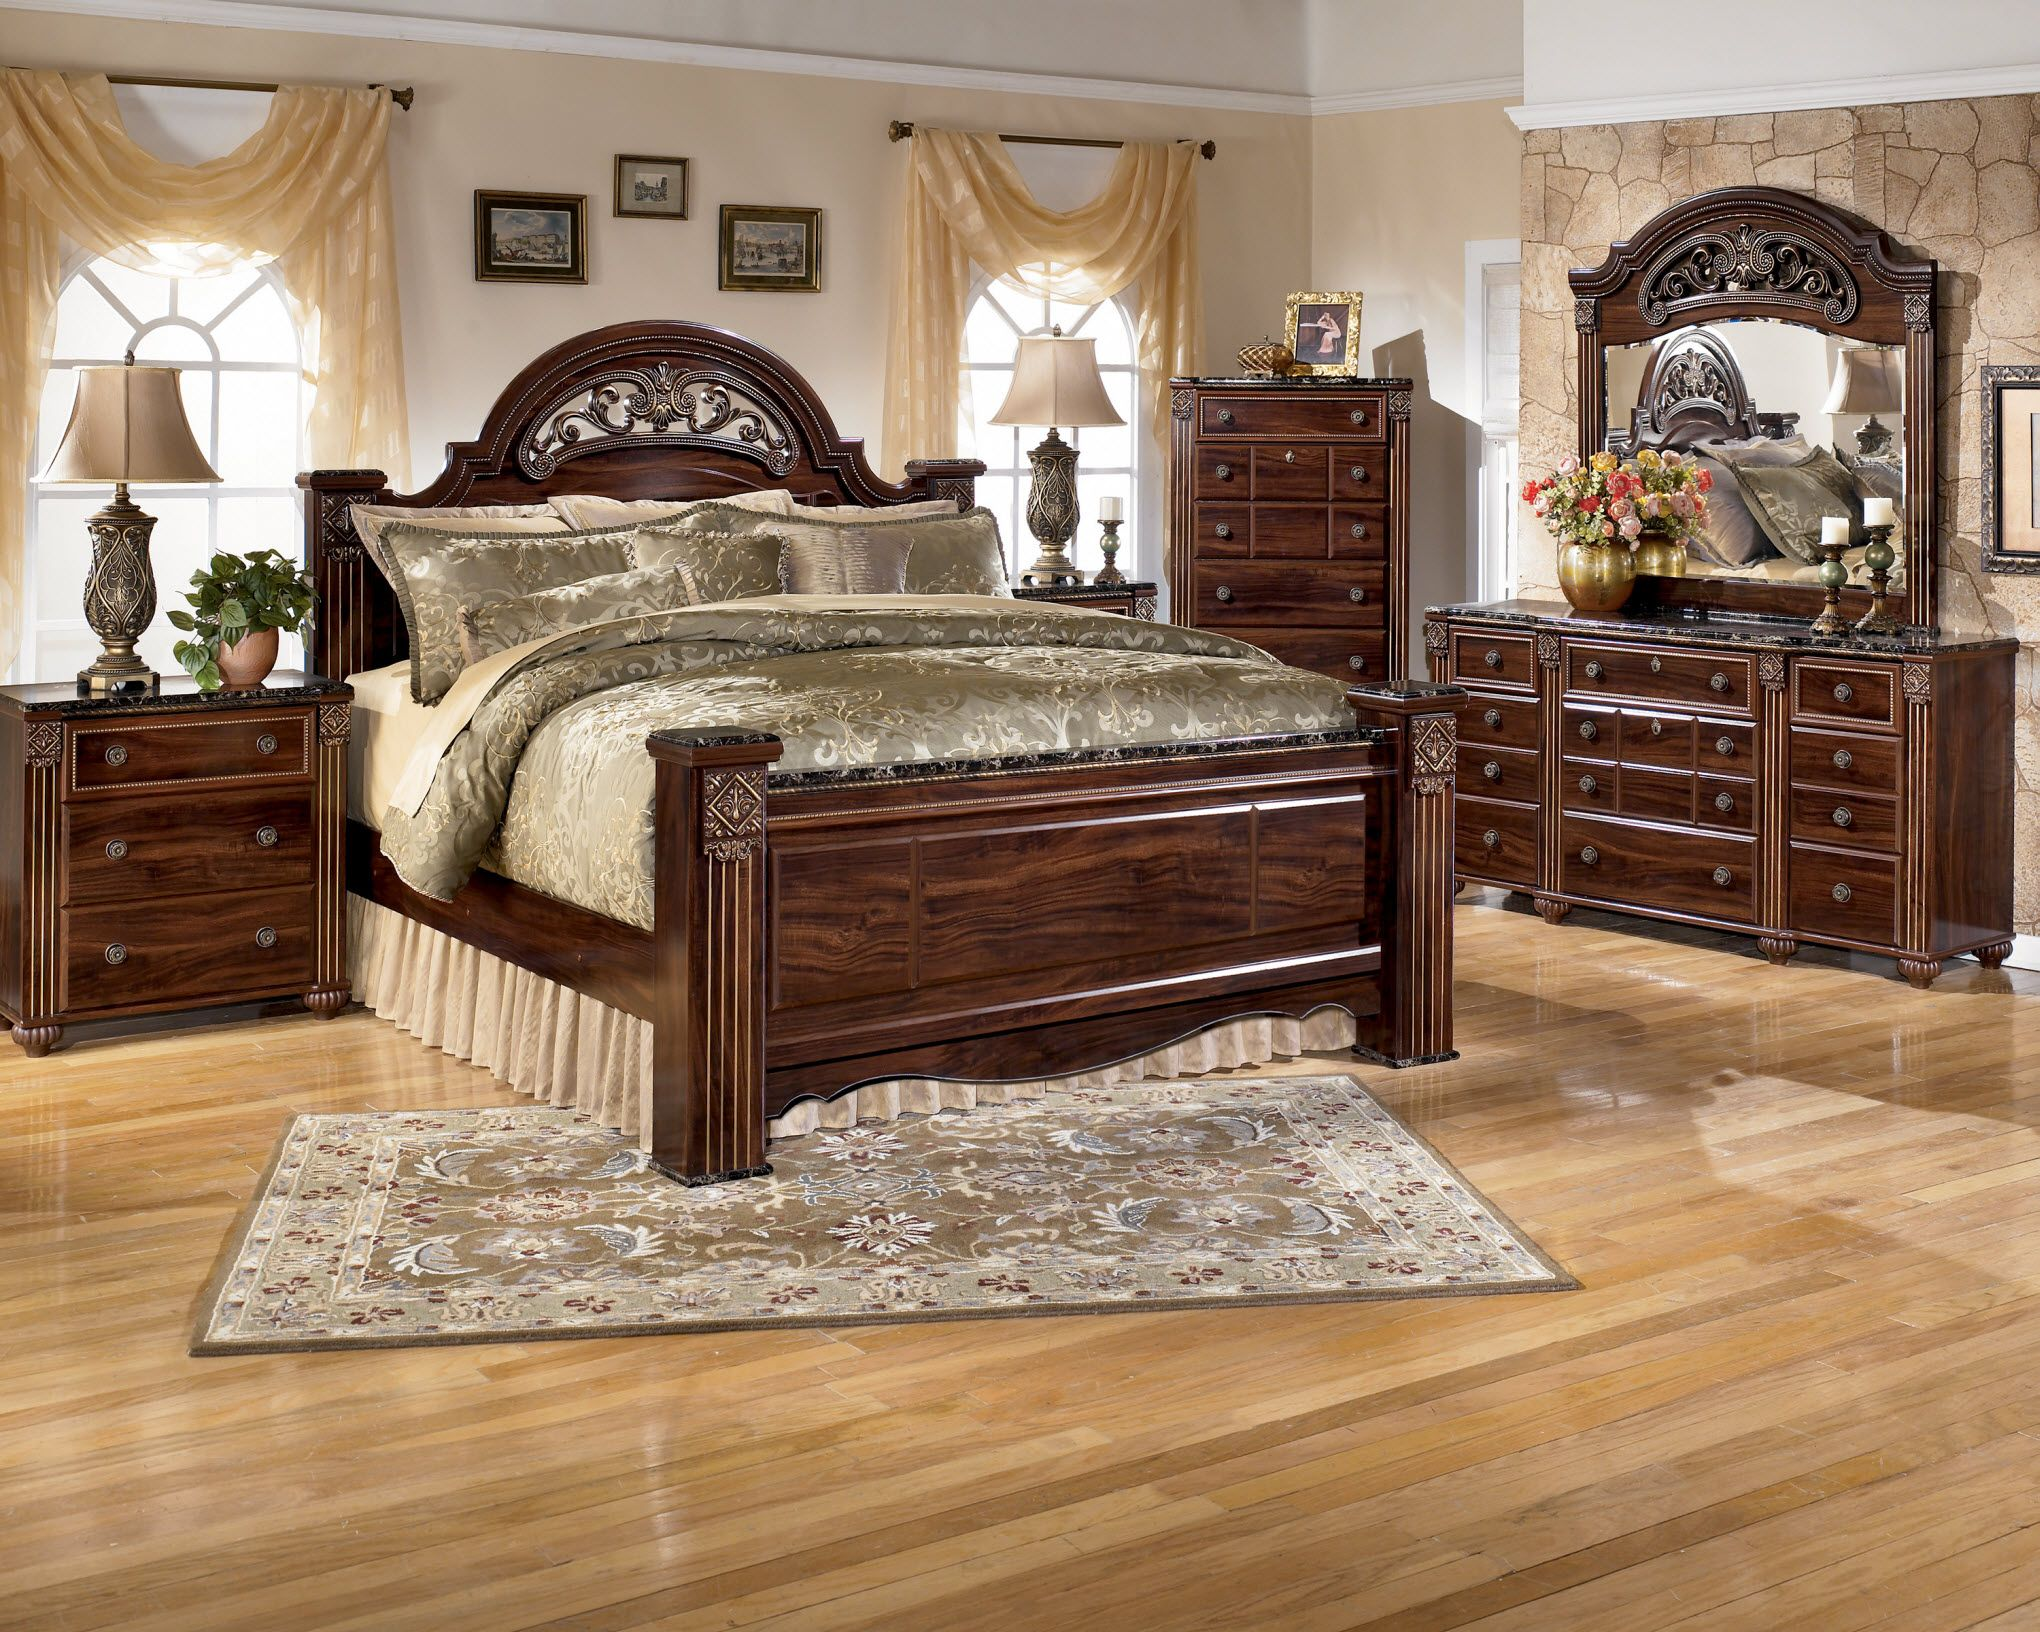 1000 Images About BEDROOM On Pinterest Bedroom Sets Sleigh